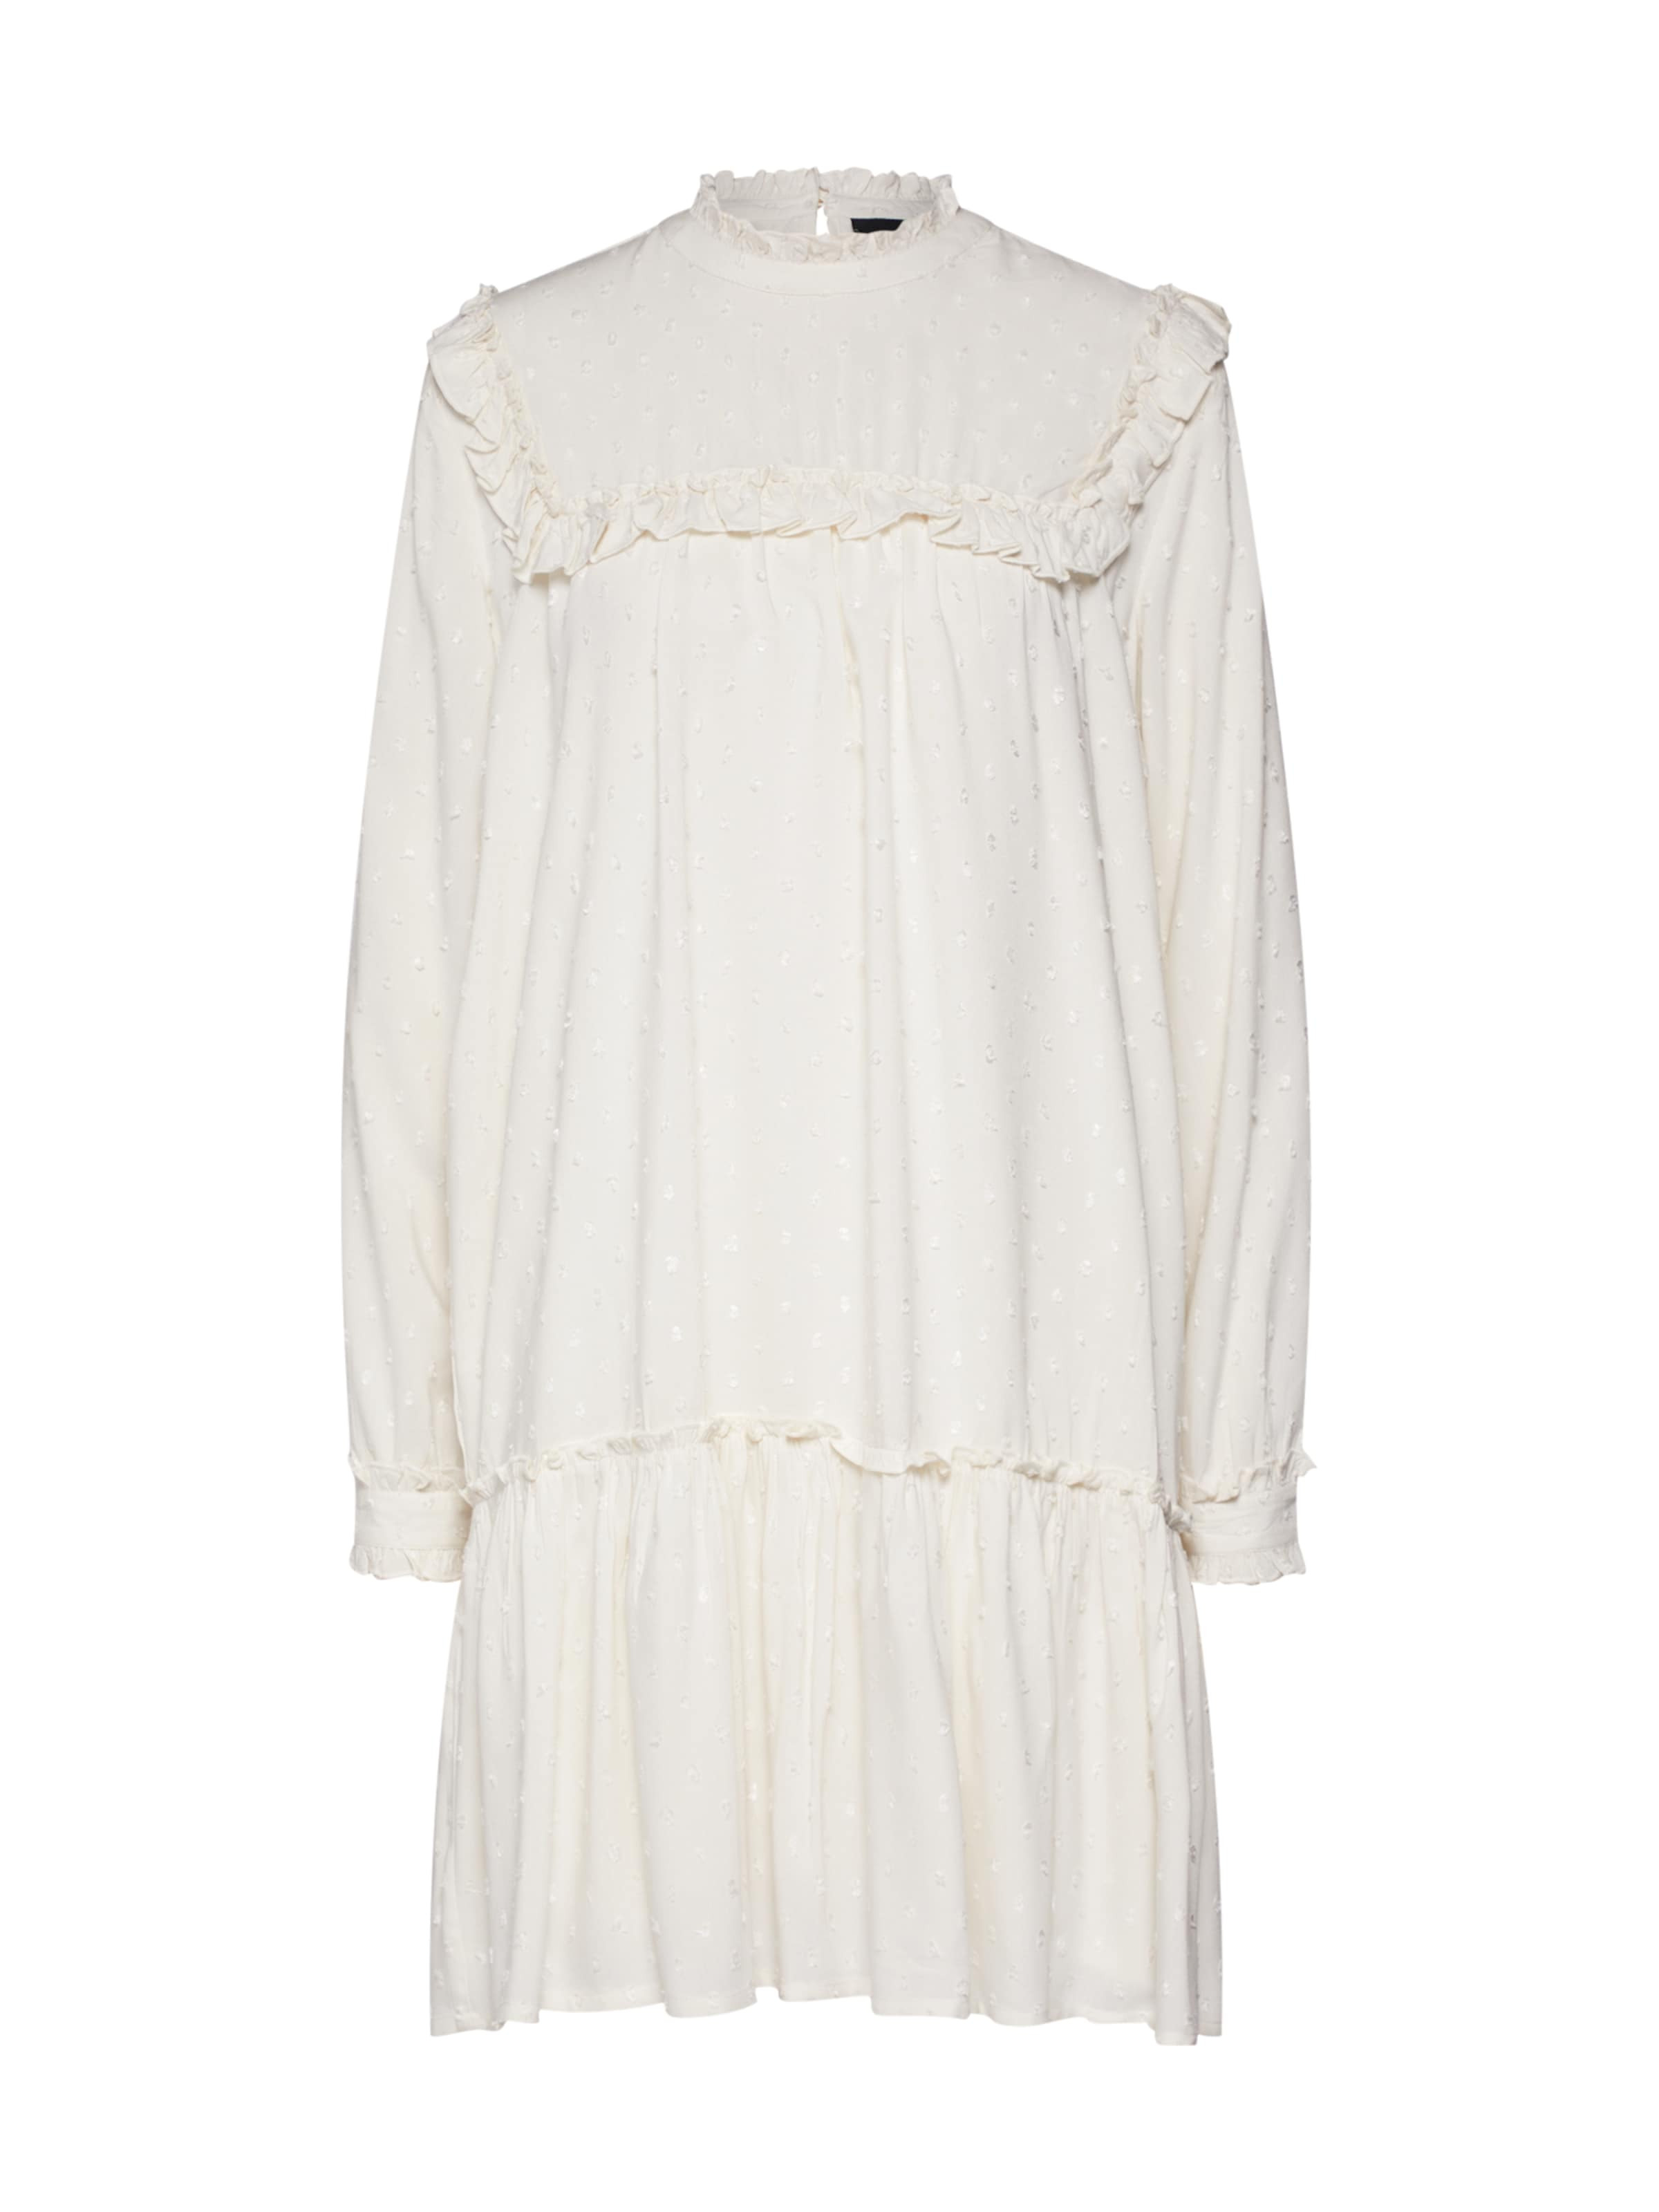 Robe s Dress' chemise En 'objaya Blanc L Object tQhxosrdBC